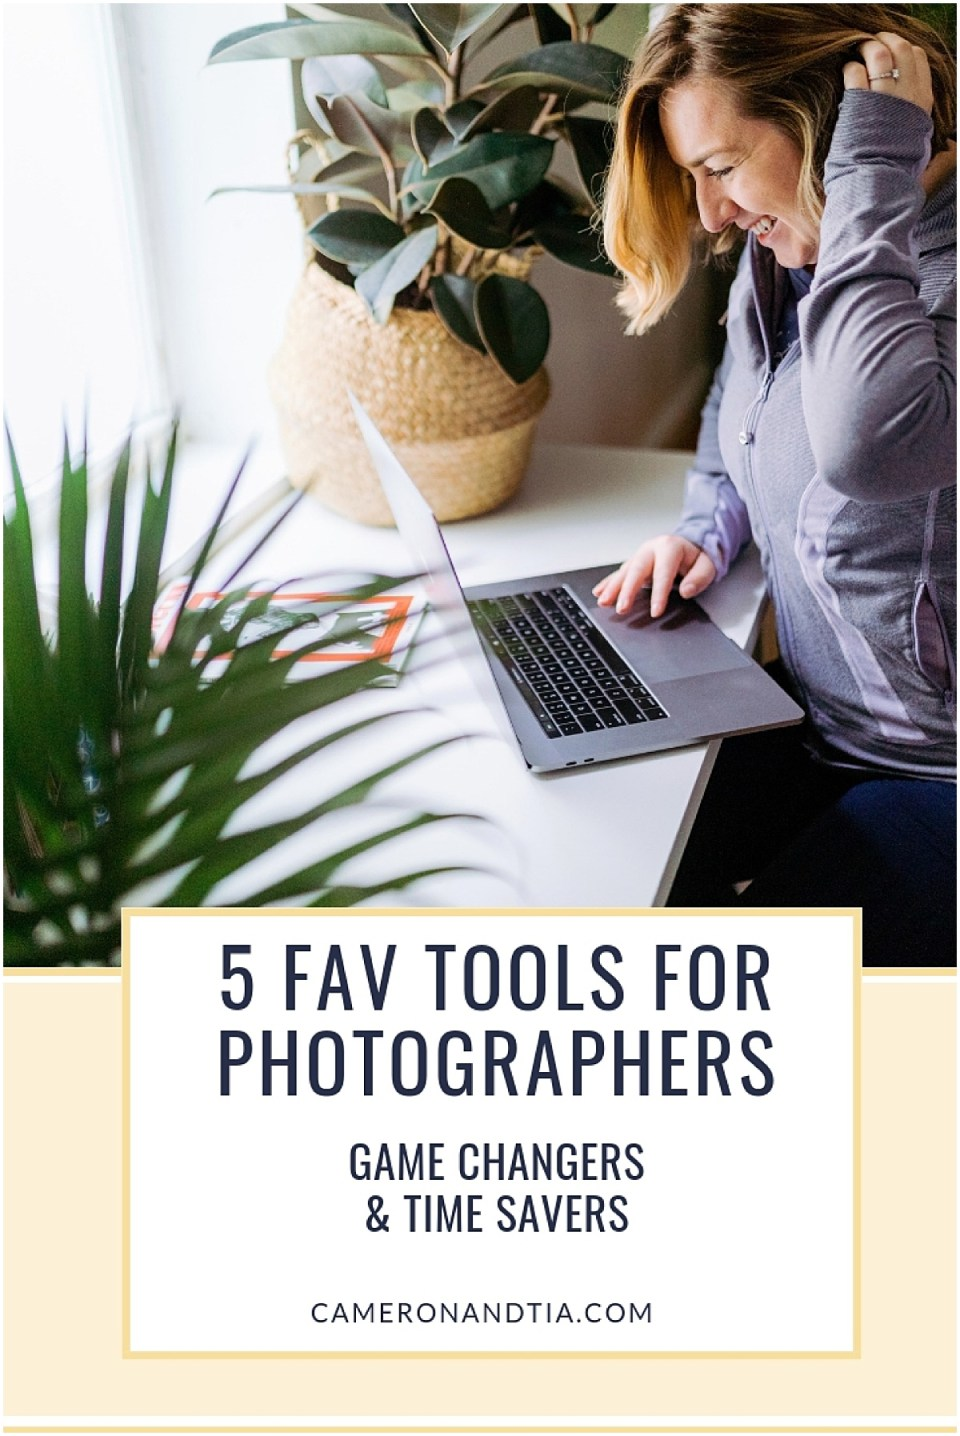 Our Five Favorite Business Tools for Photographers and Entrepreneurs by Cameron and Tia